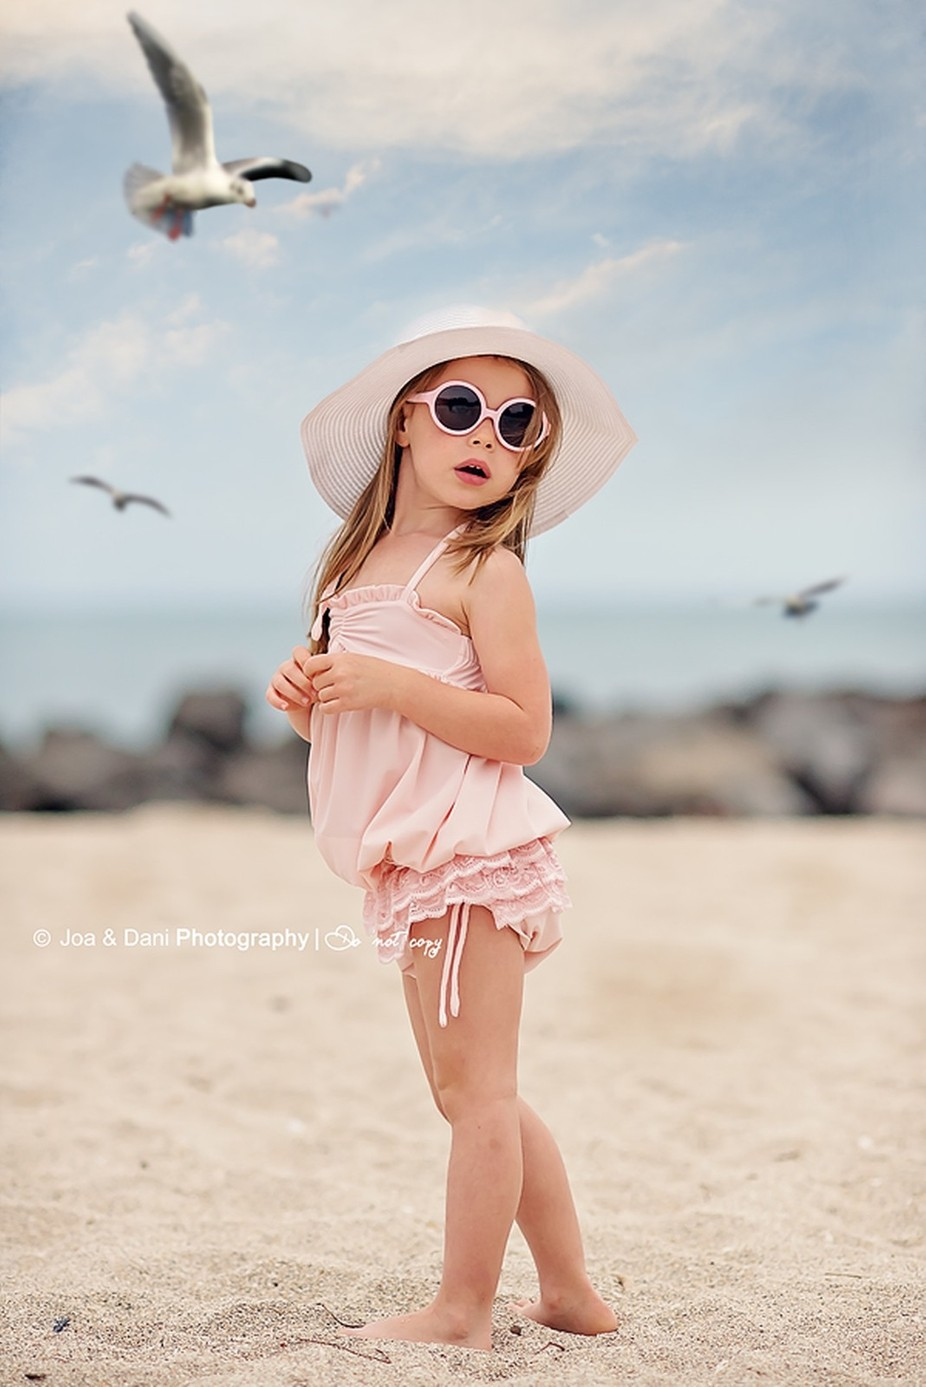 Baby Model by danielagabay - Sunglasses Photo Contest